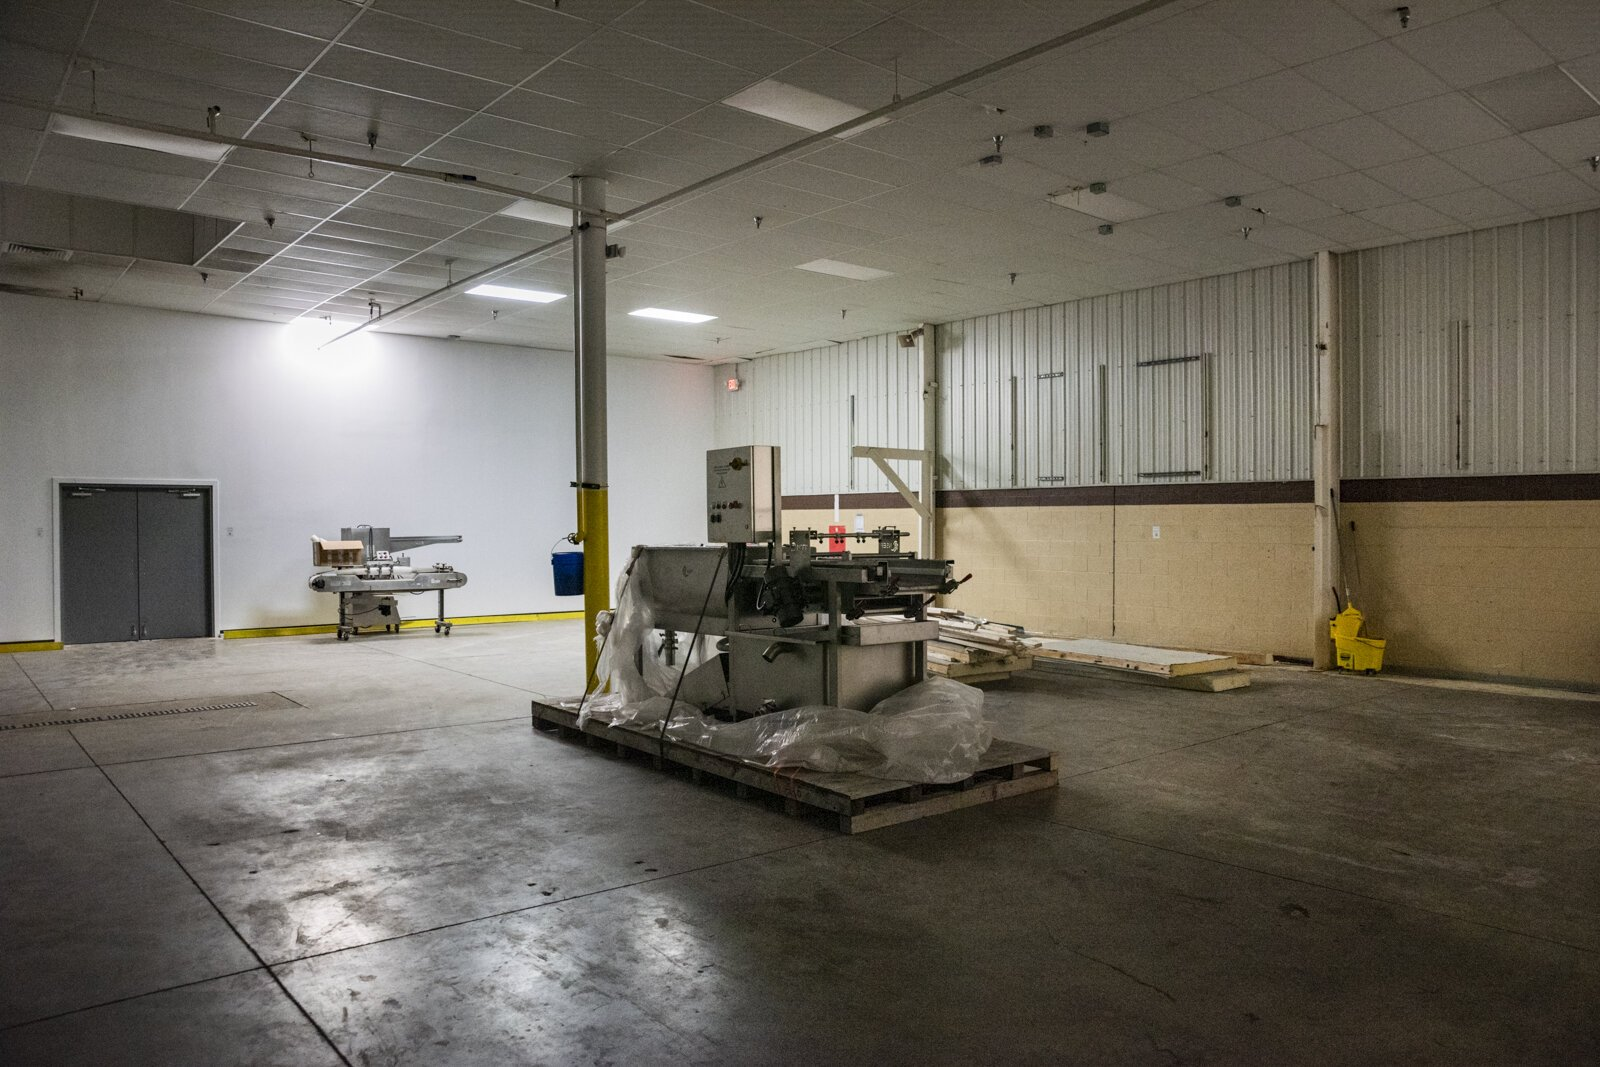 Cleveland Kraut will expand into this space at Central Kitchen in a few weeks.